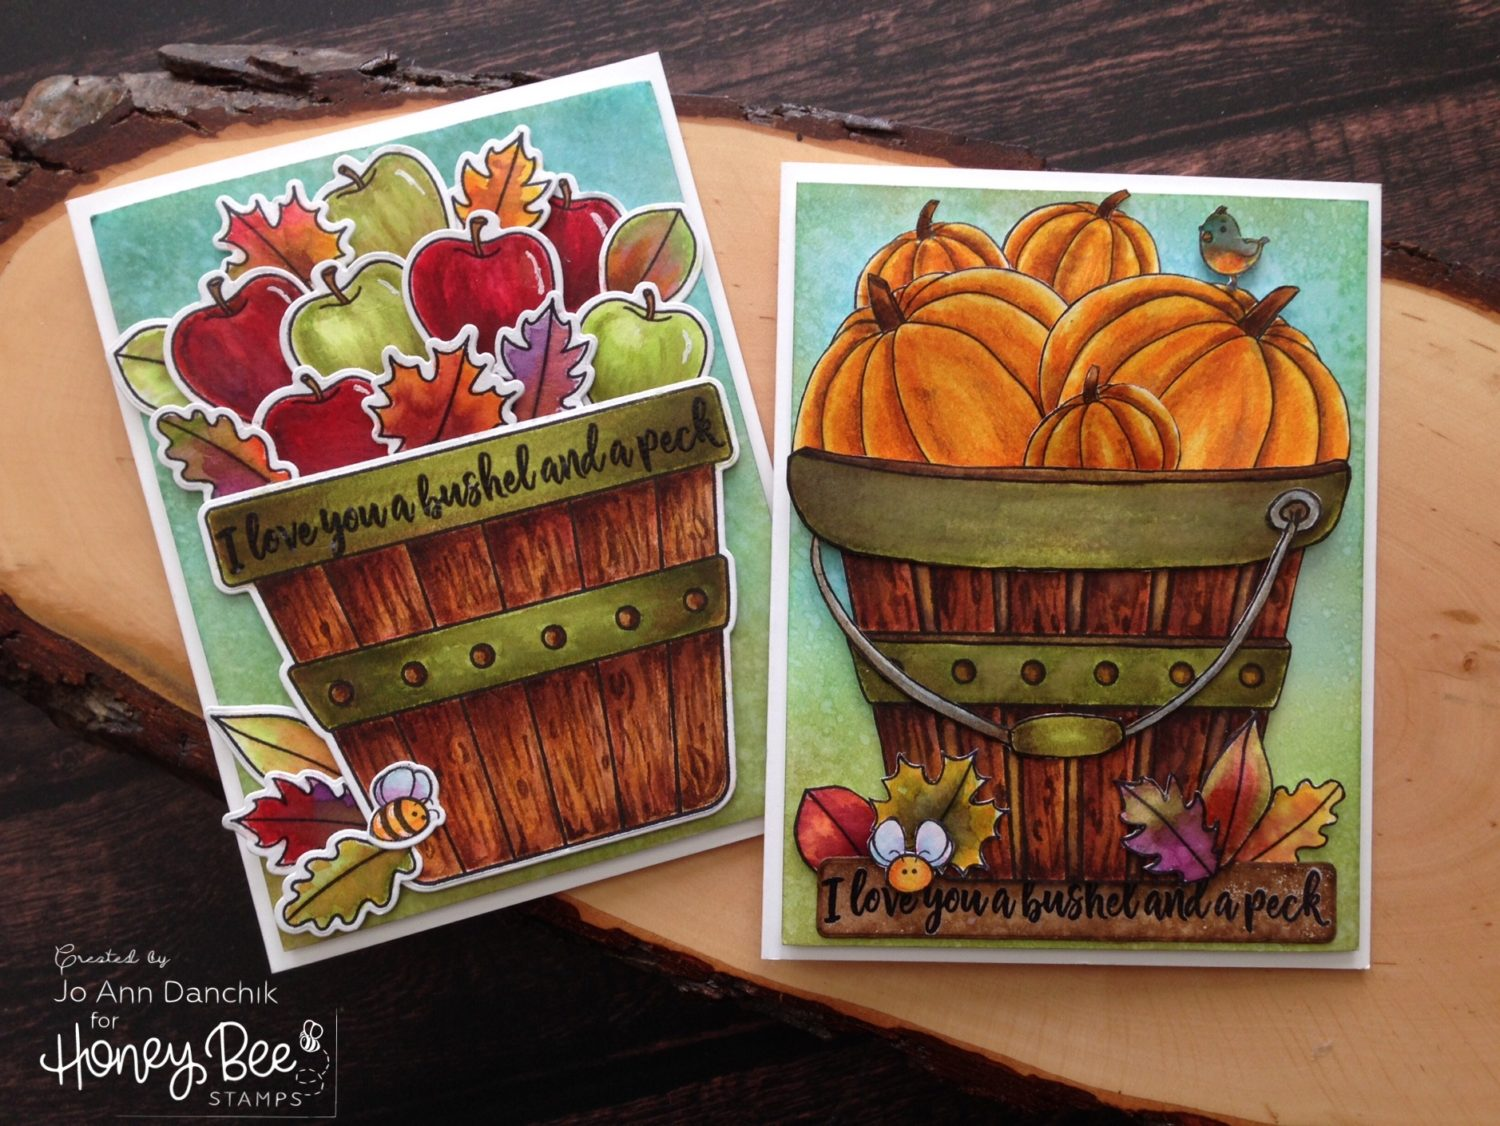 Creative Sundays with Jo Ann: Bushel and A Peck – One Stamp…Two Ways.